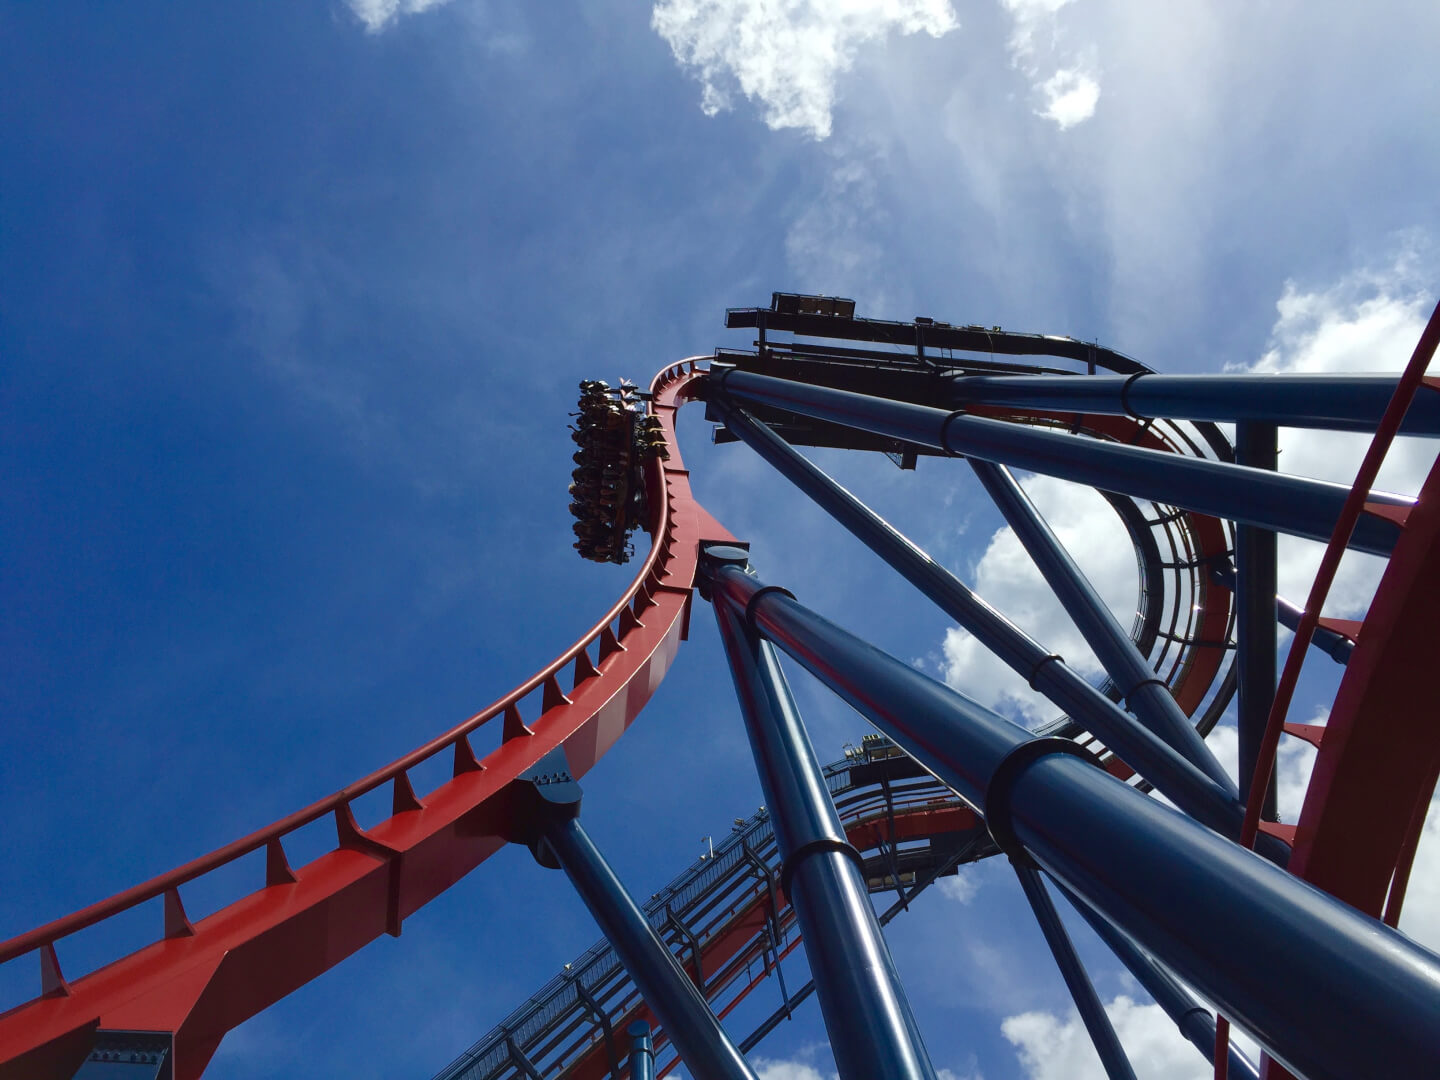 Tour Guide Tuesday Head To Busch Gardens For Some Bigger Thrill Rides Inside The Magic